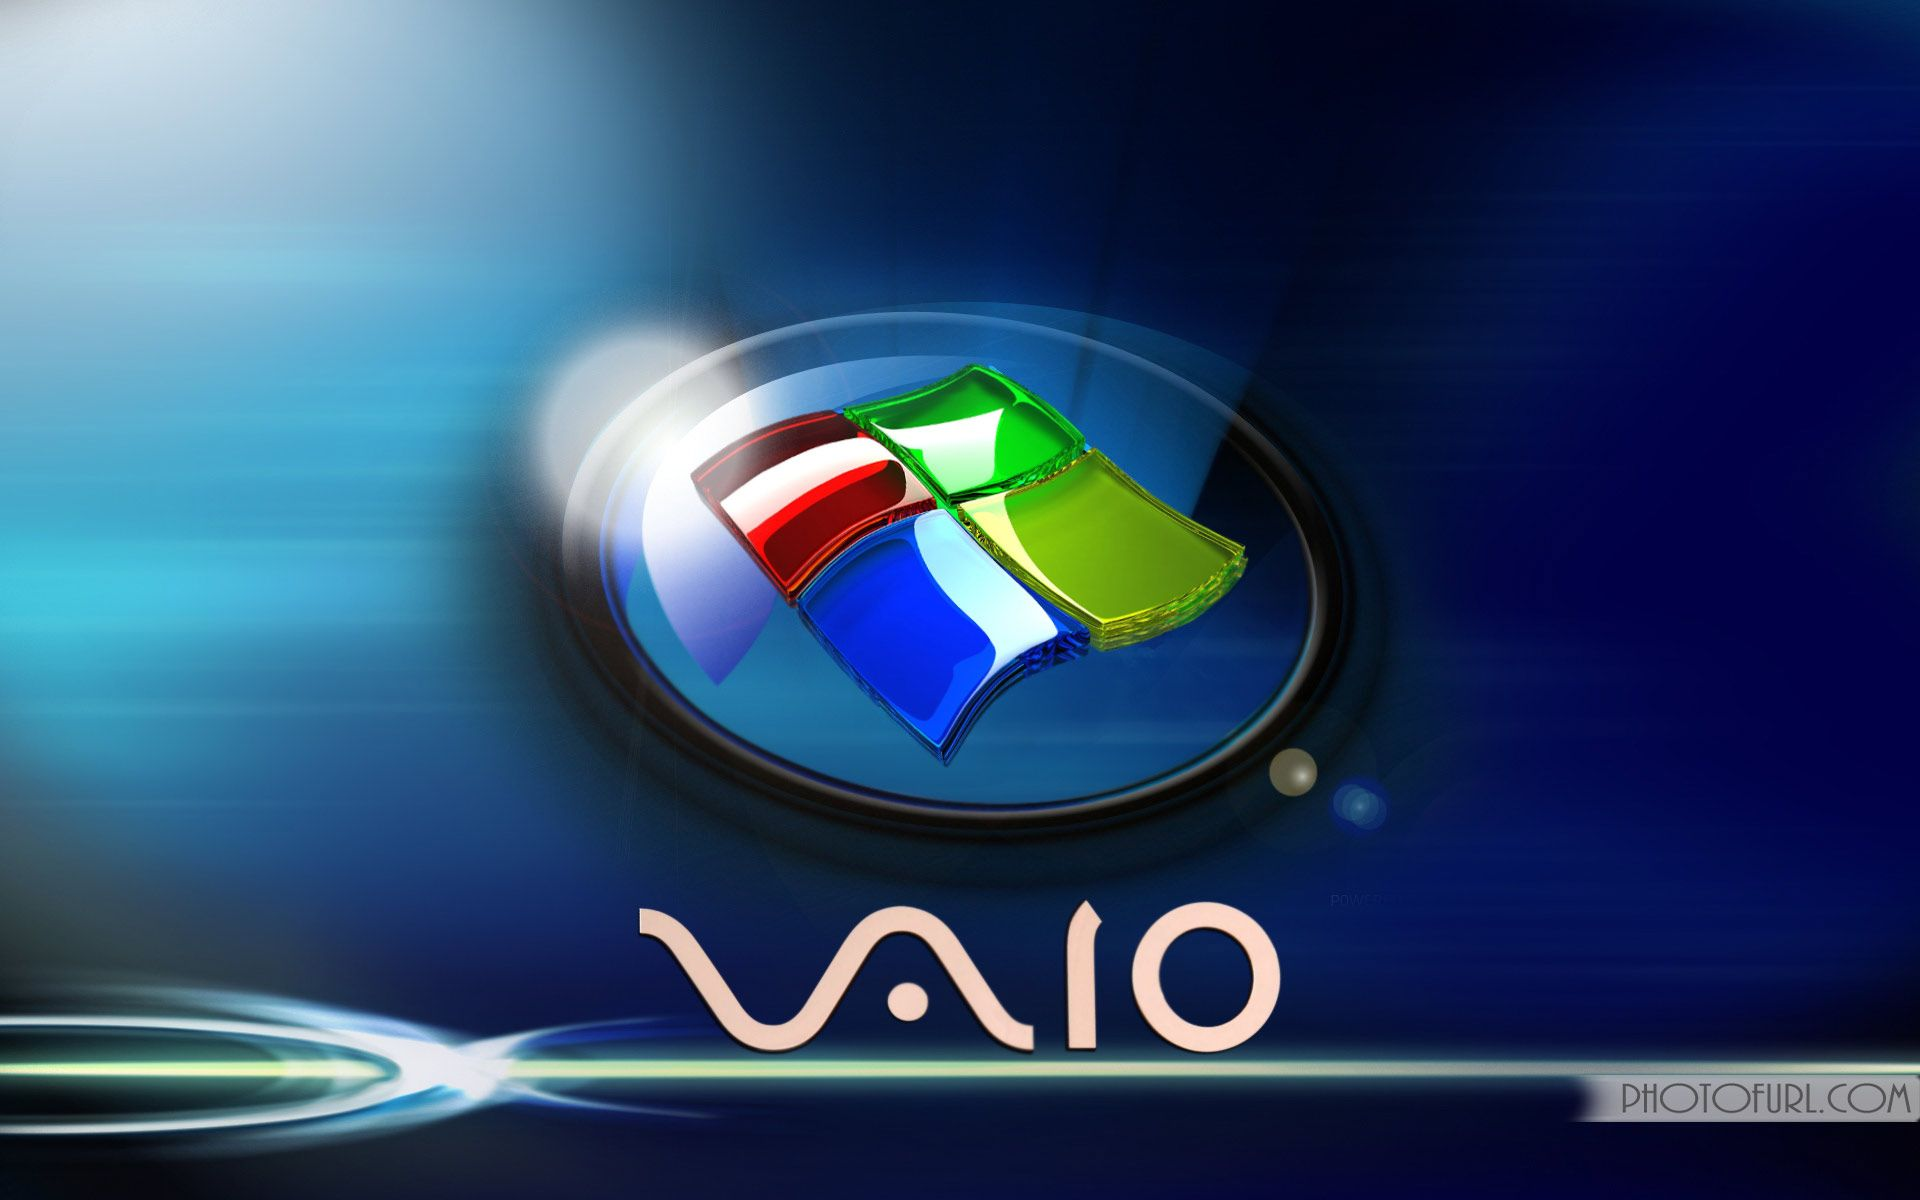 sony vaio wallpapers free download free wallpapers